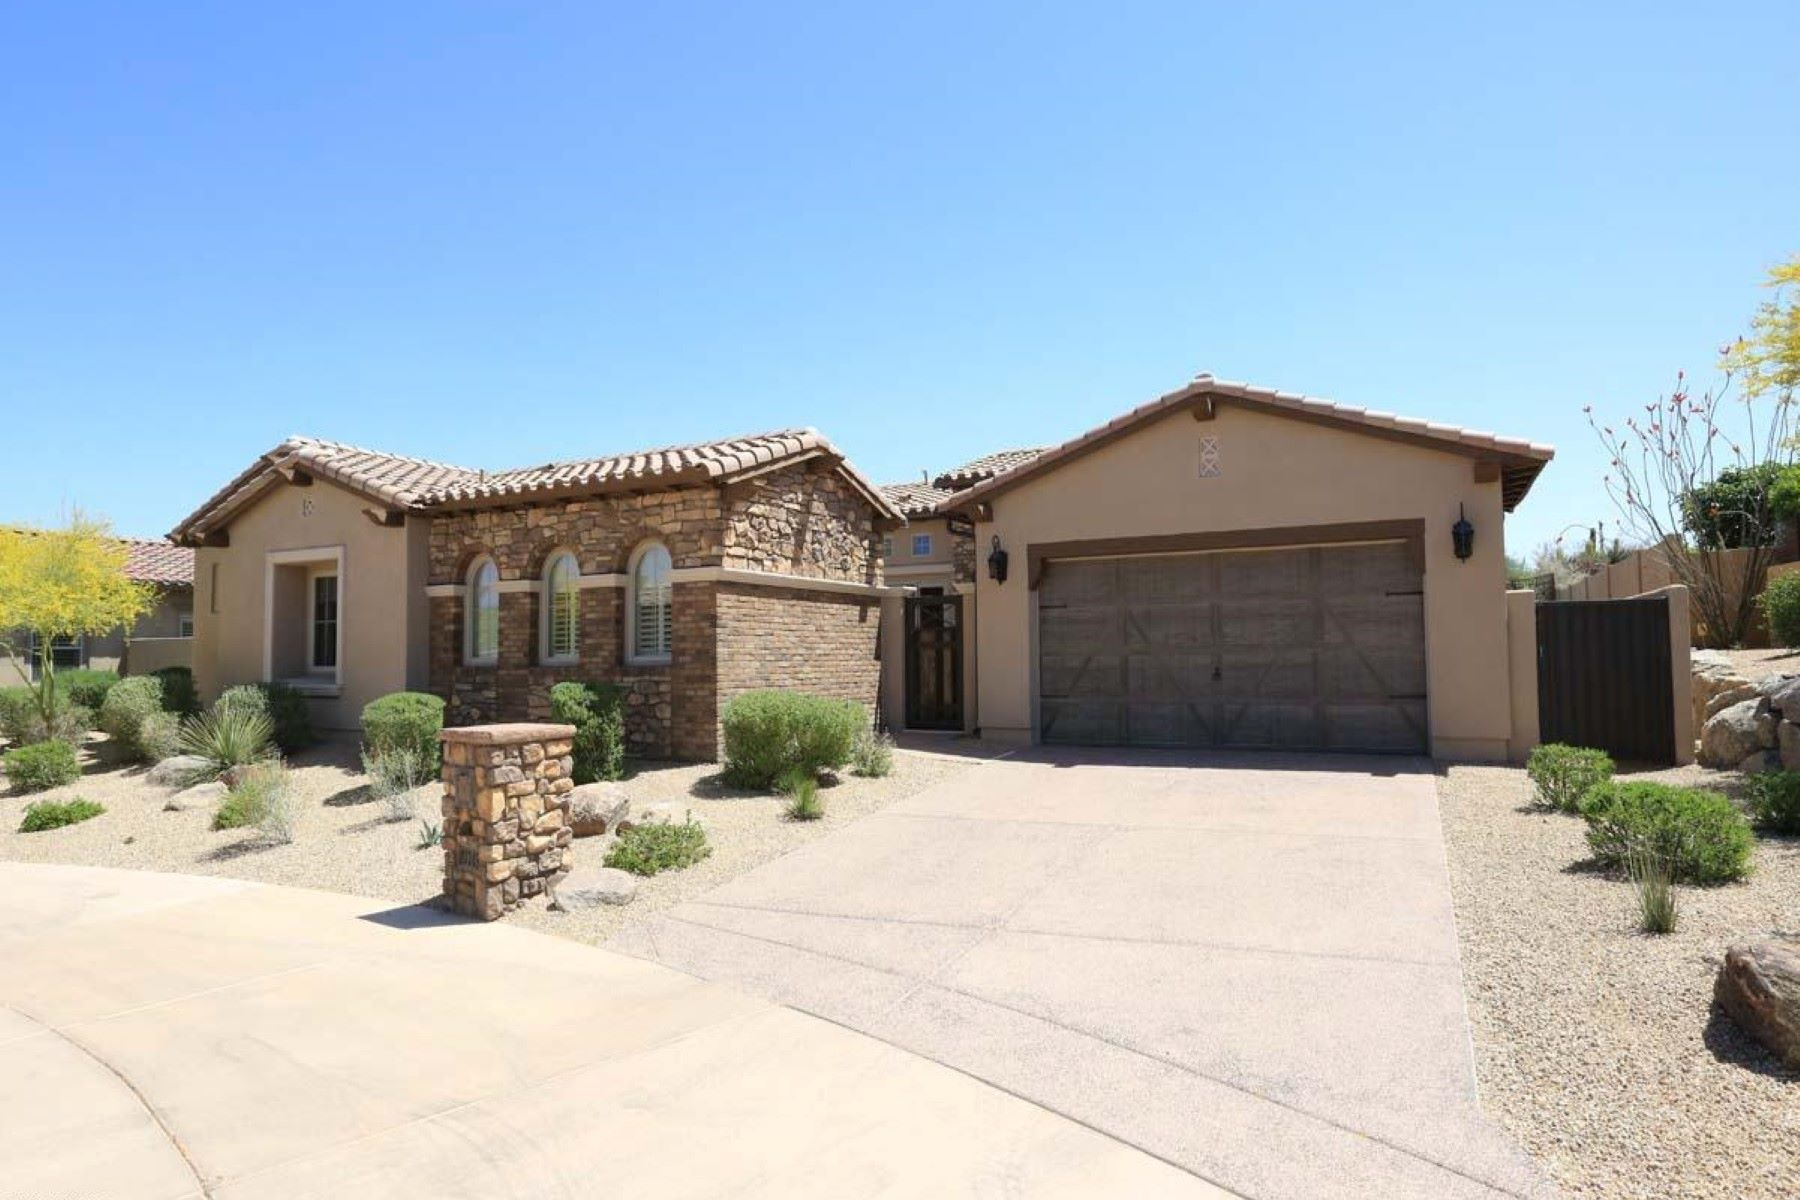 Single Family Home for Sale at Fabulous home with an outstanding view of Troon Mountain 27745 N 110th Pl Scottsdale, Arizona, 85262 United States